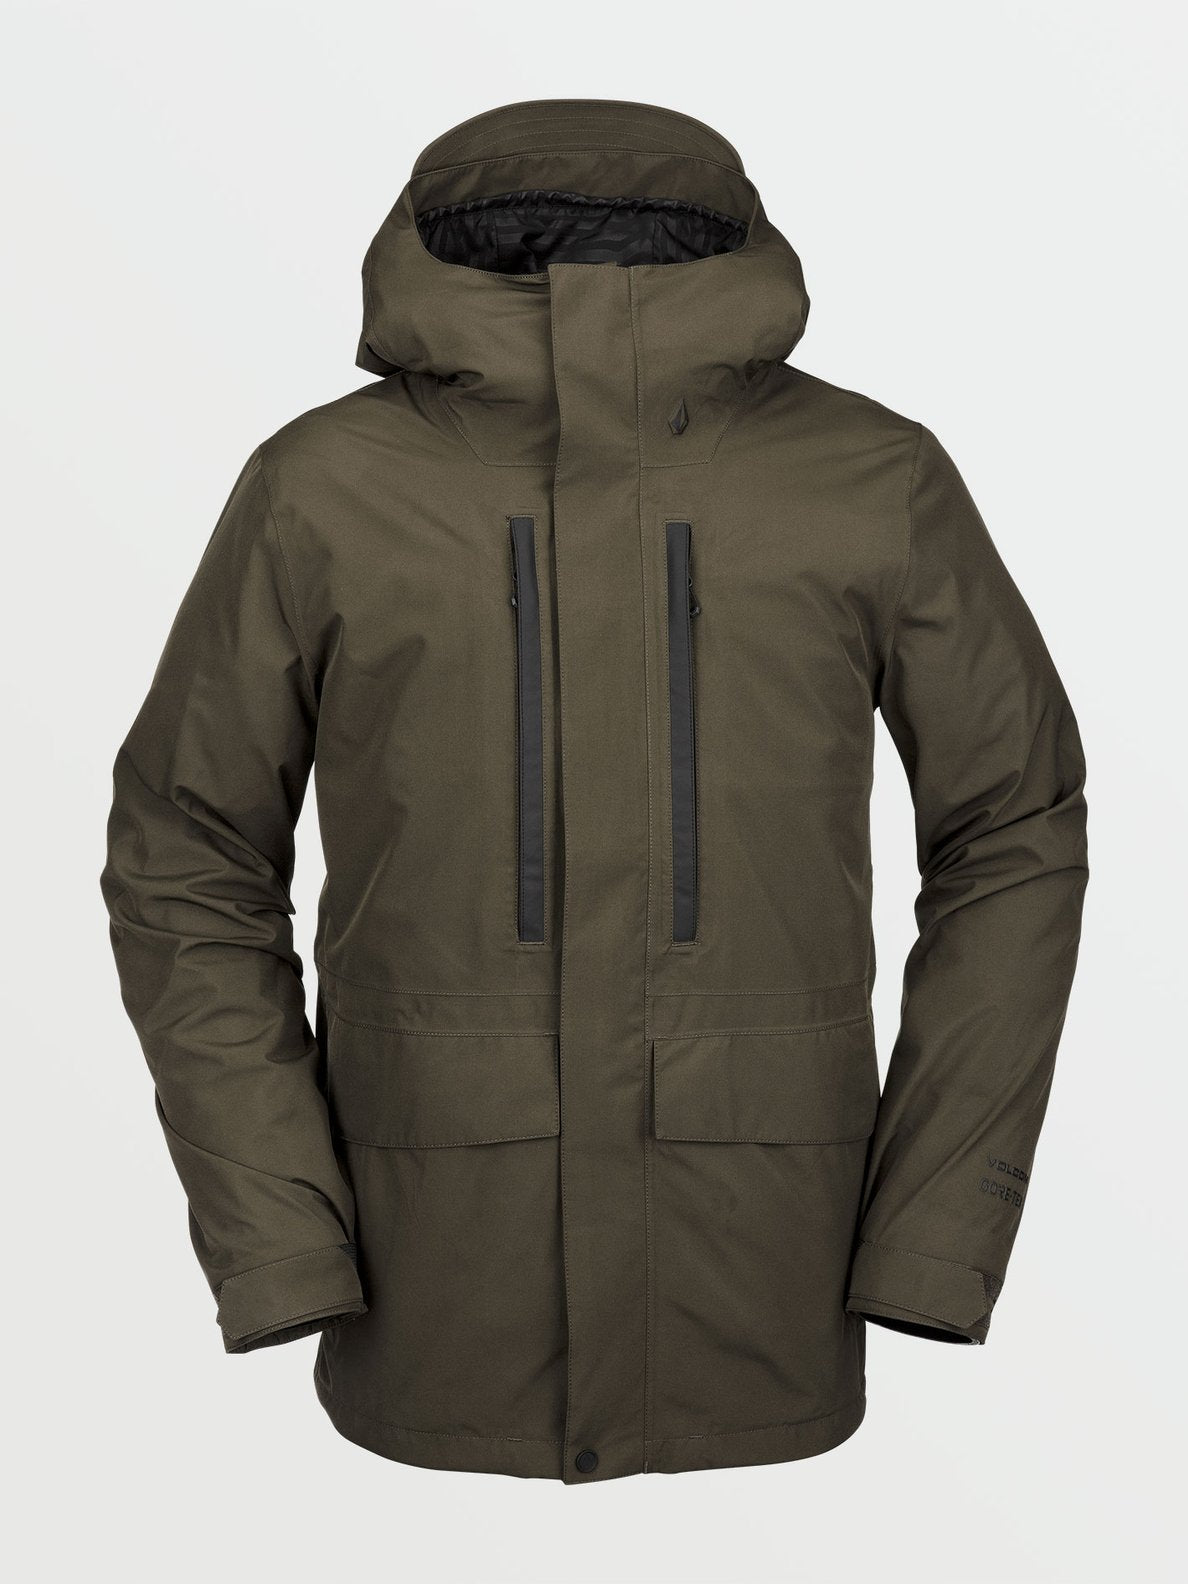 Mens Ten Insulated Gore-Tex Jacket - Black Military